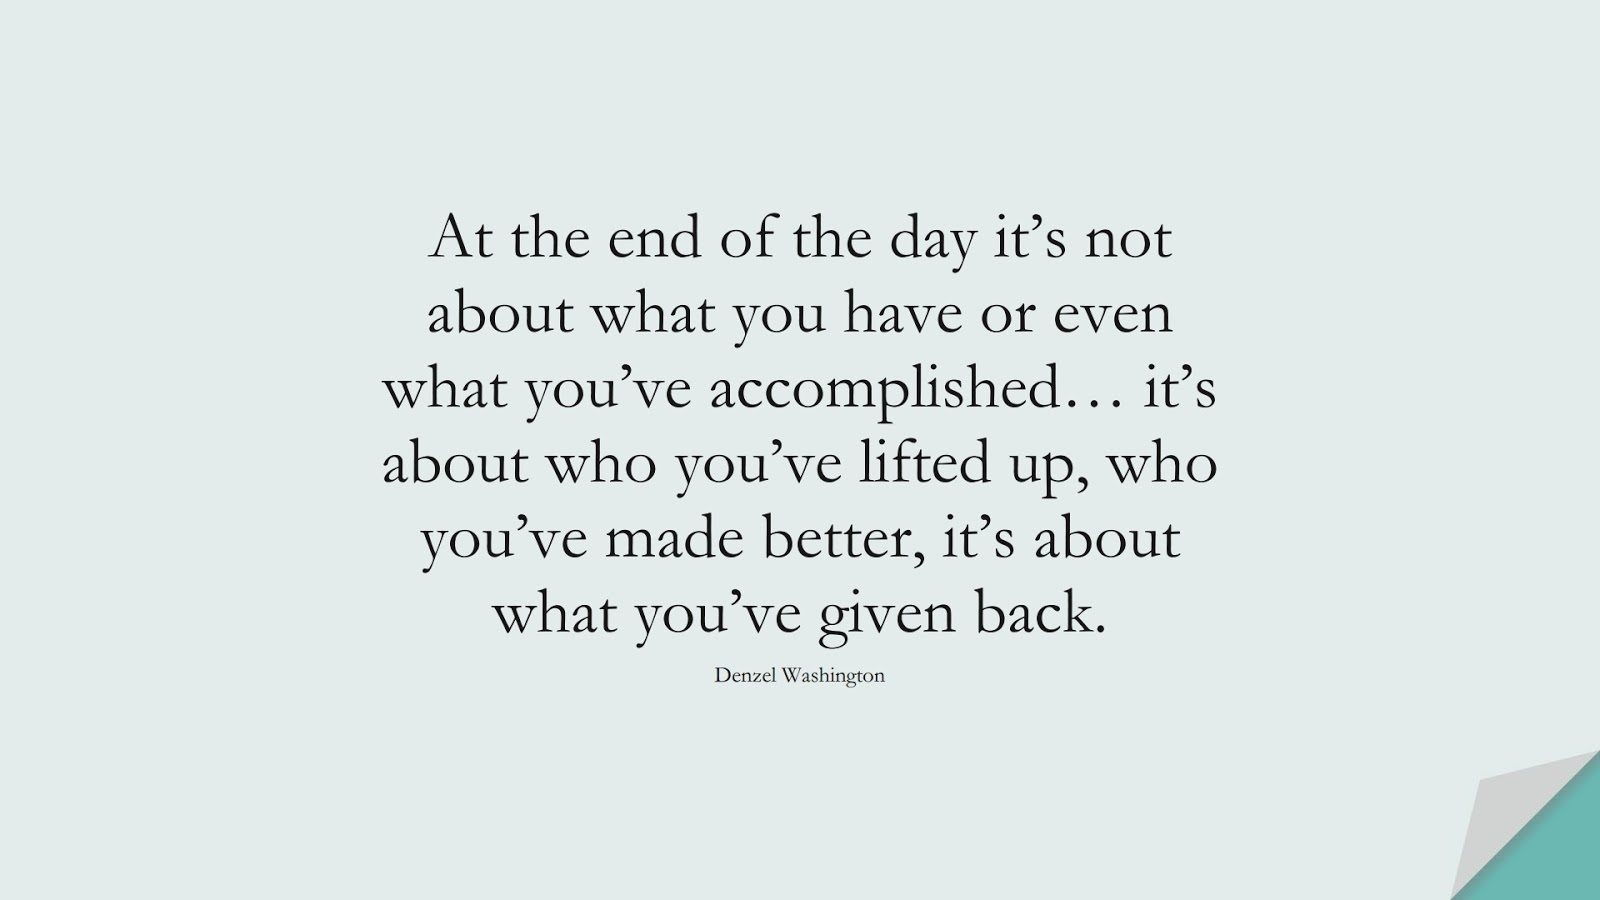 At the end of the day it's not about what you have or even what you've accomplished… it's about who you've lifted up, who you've made better, it's about what you've given back. (Denzel Washington);  #InspirationalQuotes